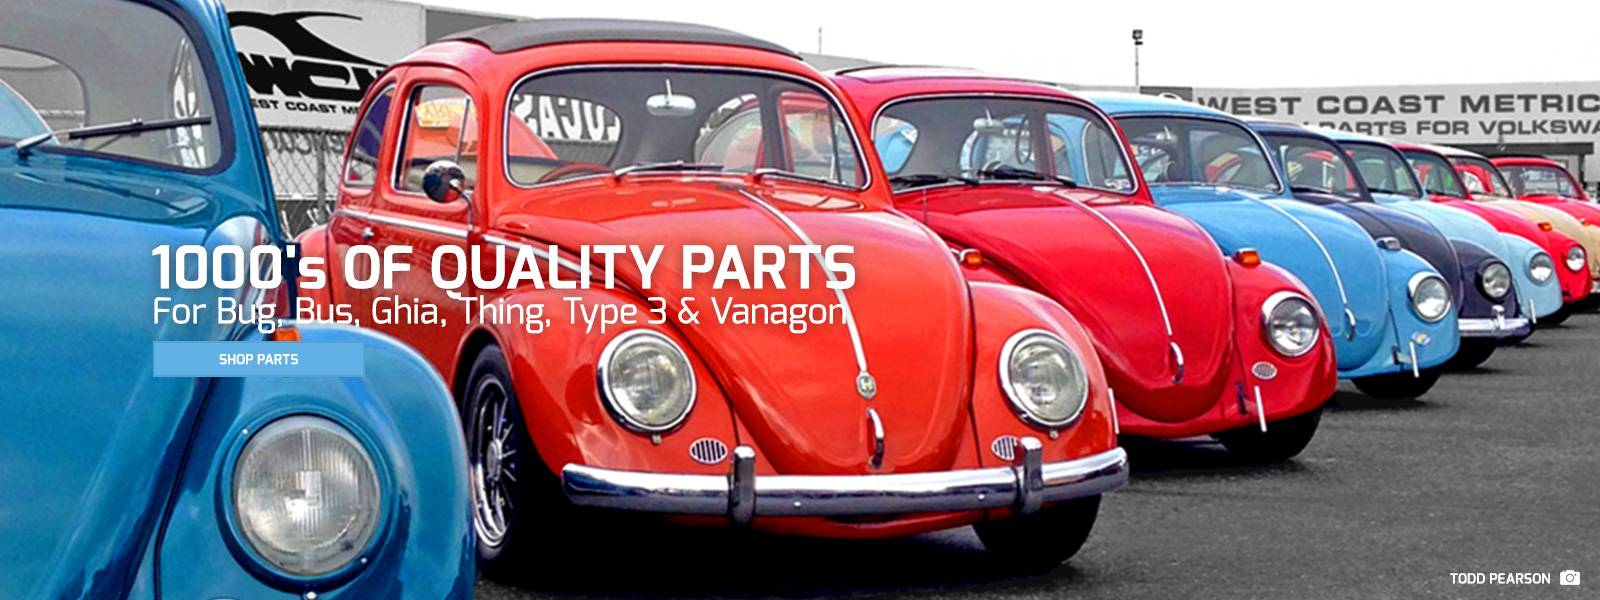 hight resolution of vw parts bug parts or bus parts volkswagen parts for your vw bug or vw bus